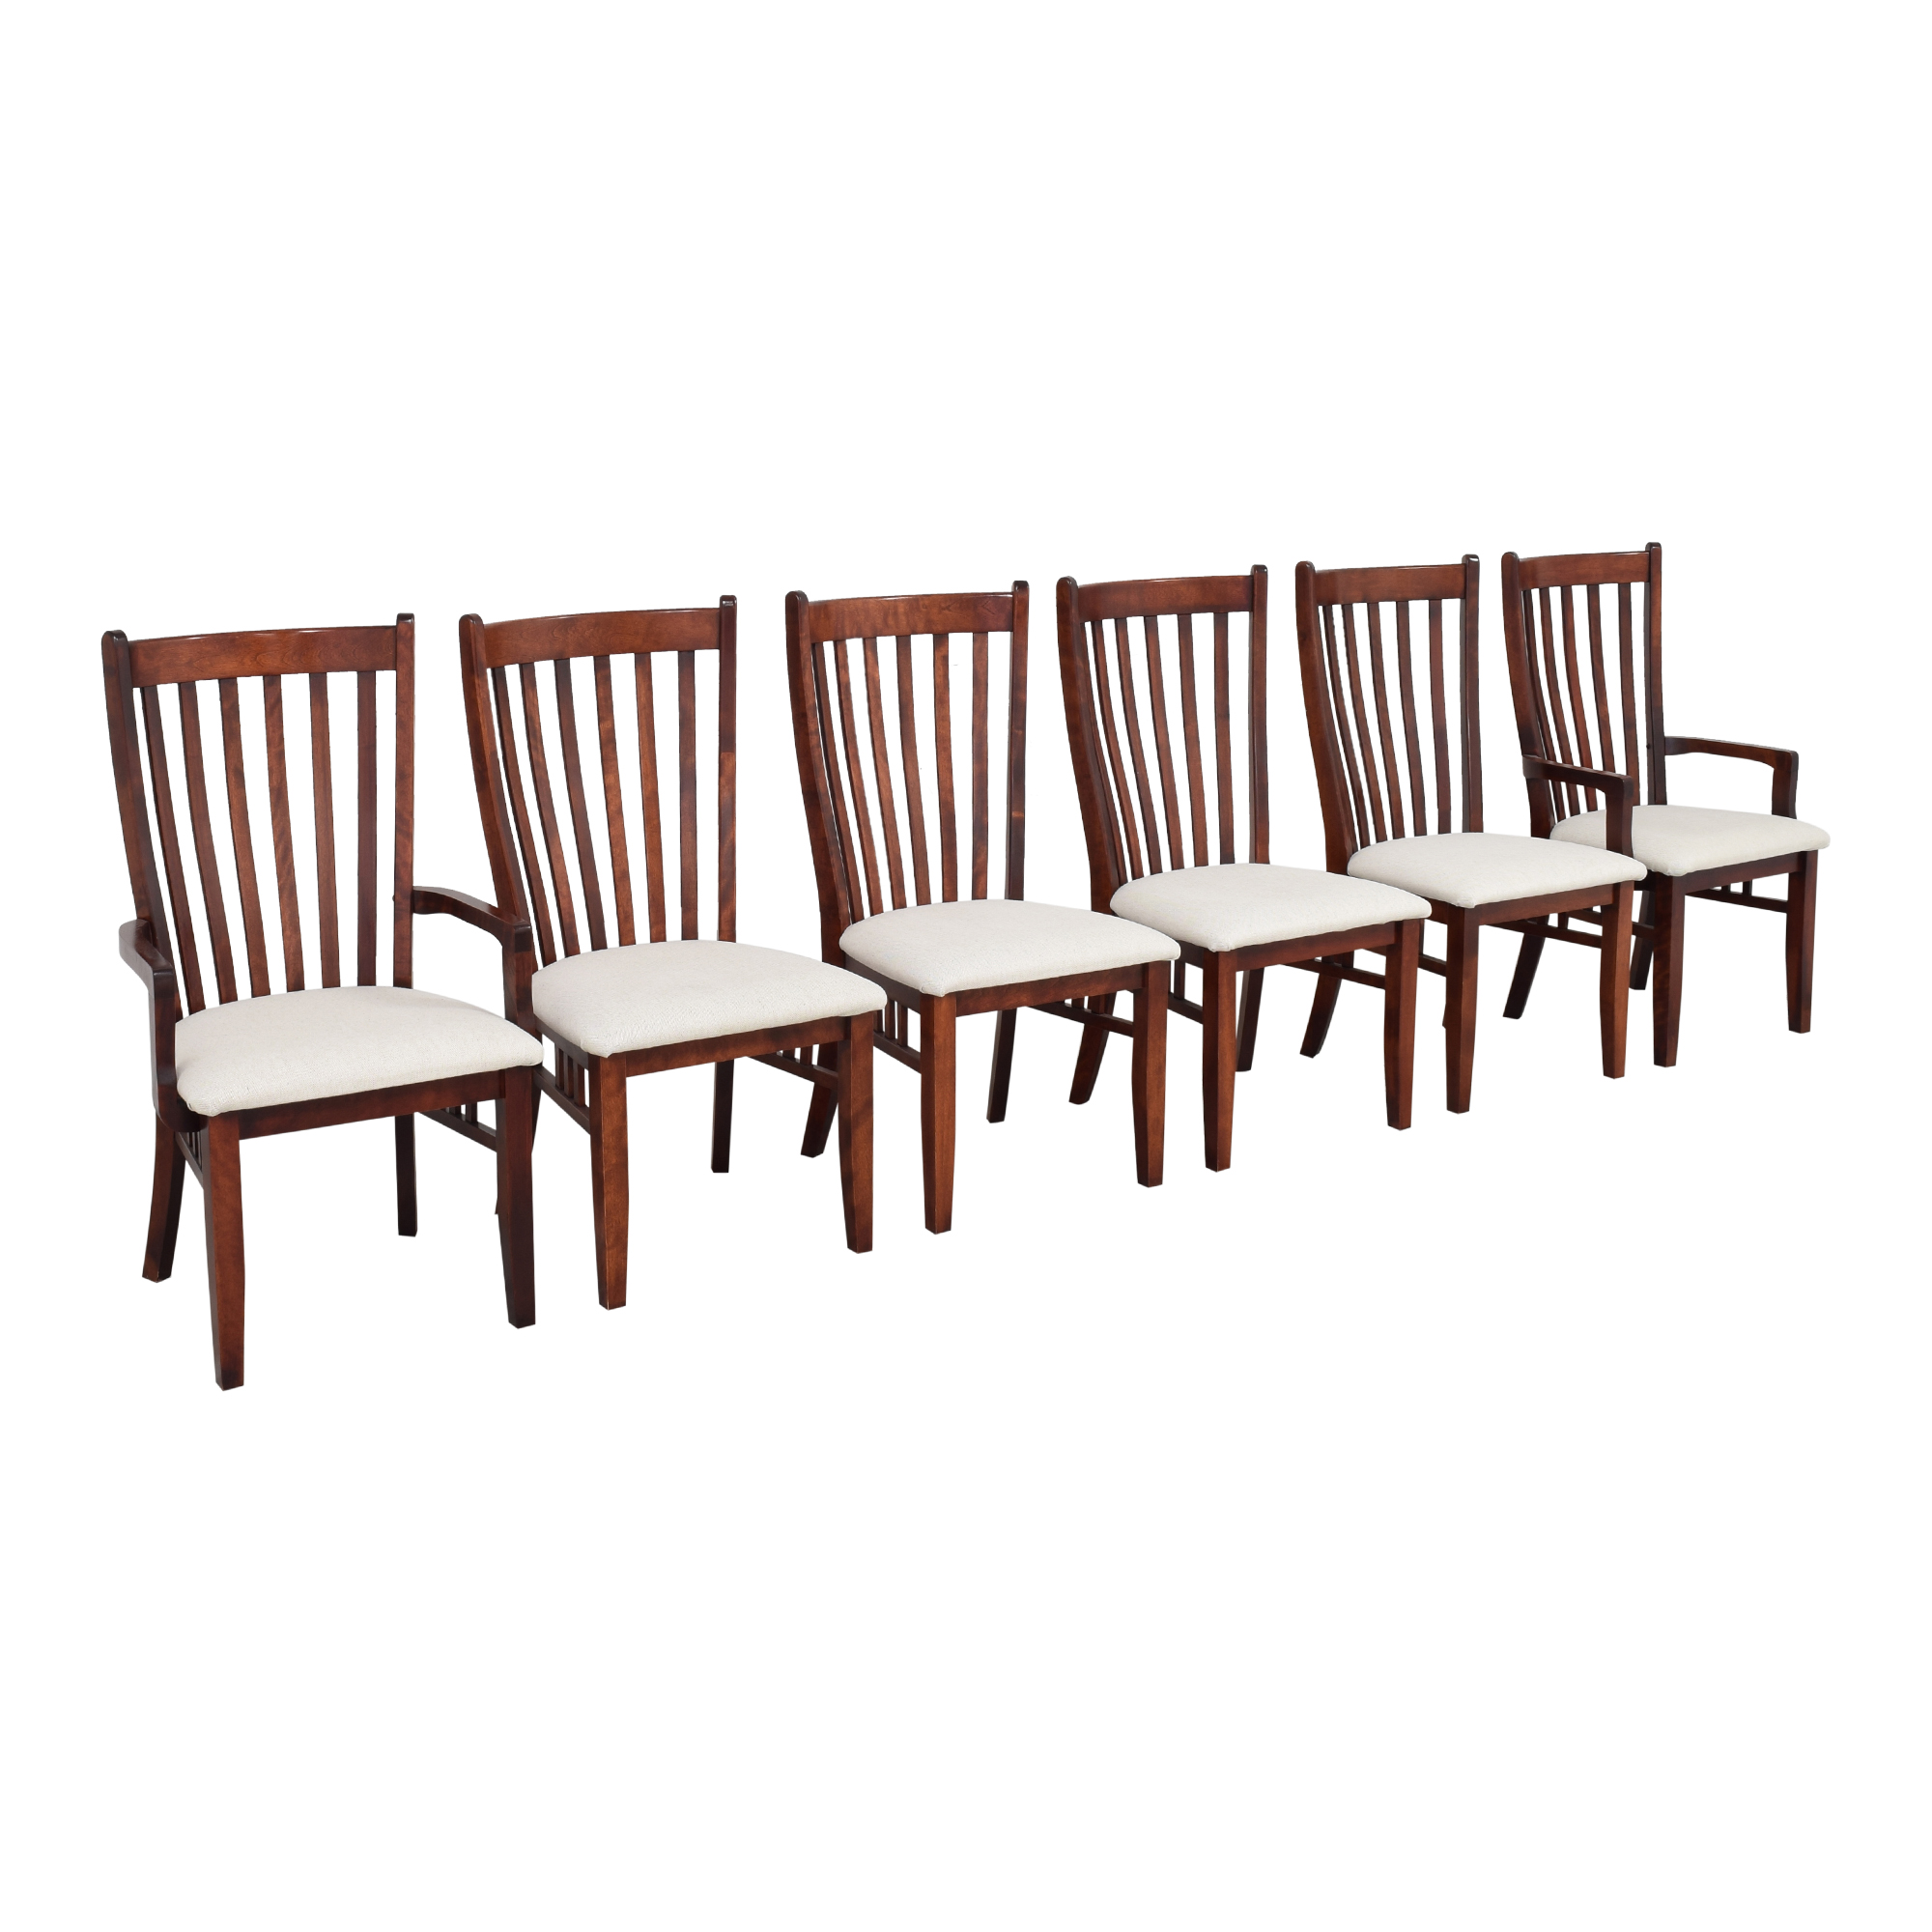 Canadel Canadel Slat Back Dining Chairs ct